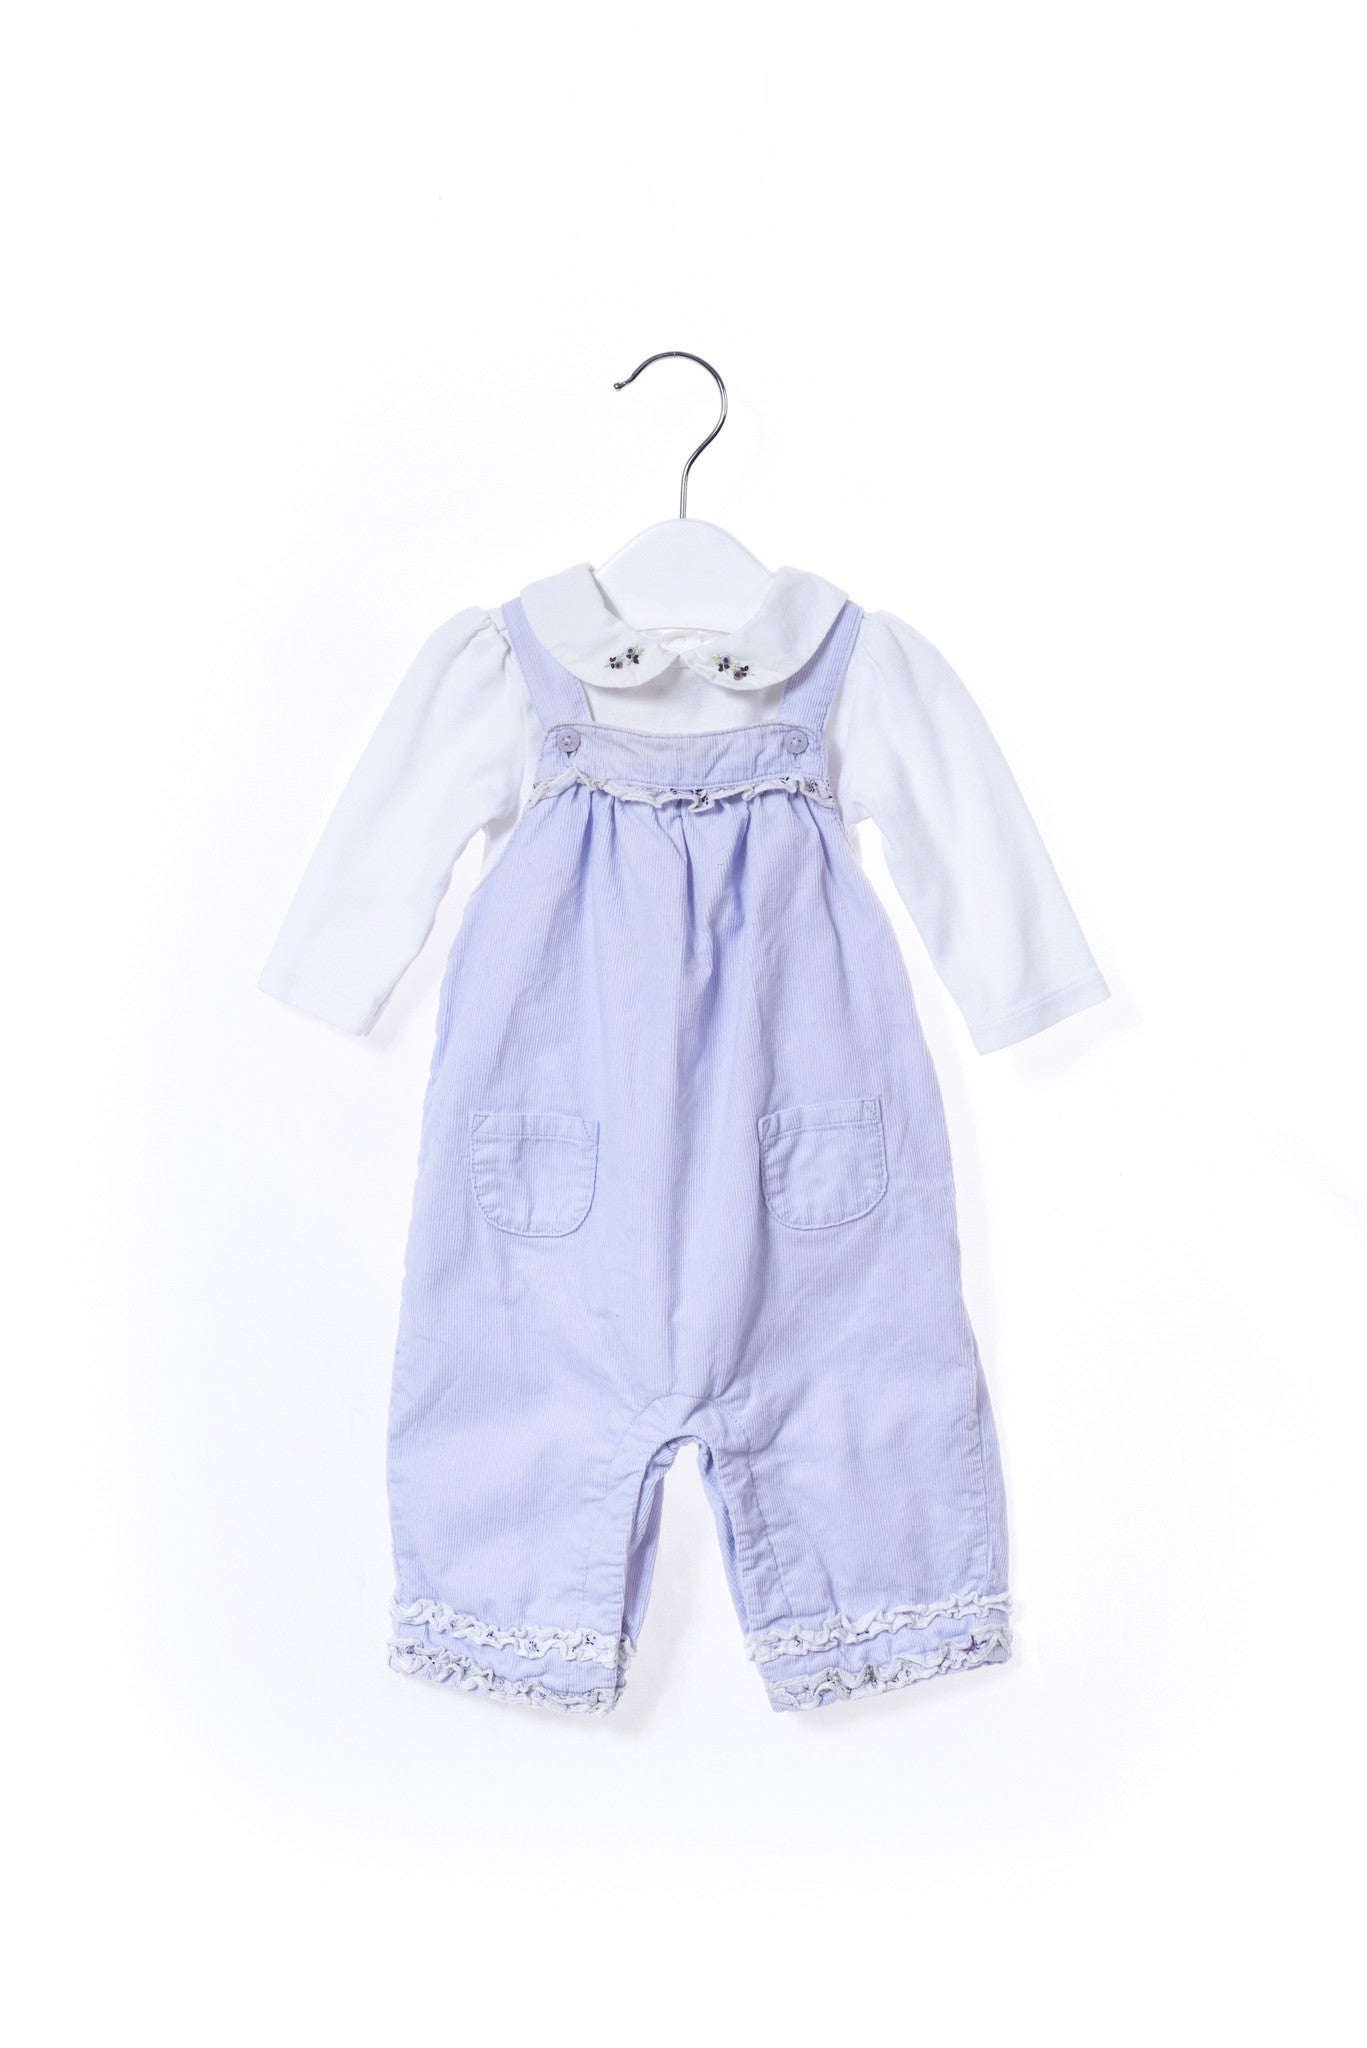 10001001 Jacadi Baby~Overall Set 0-3M at Retykle